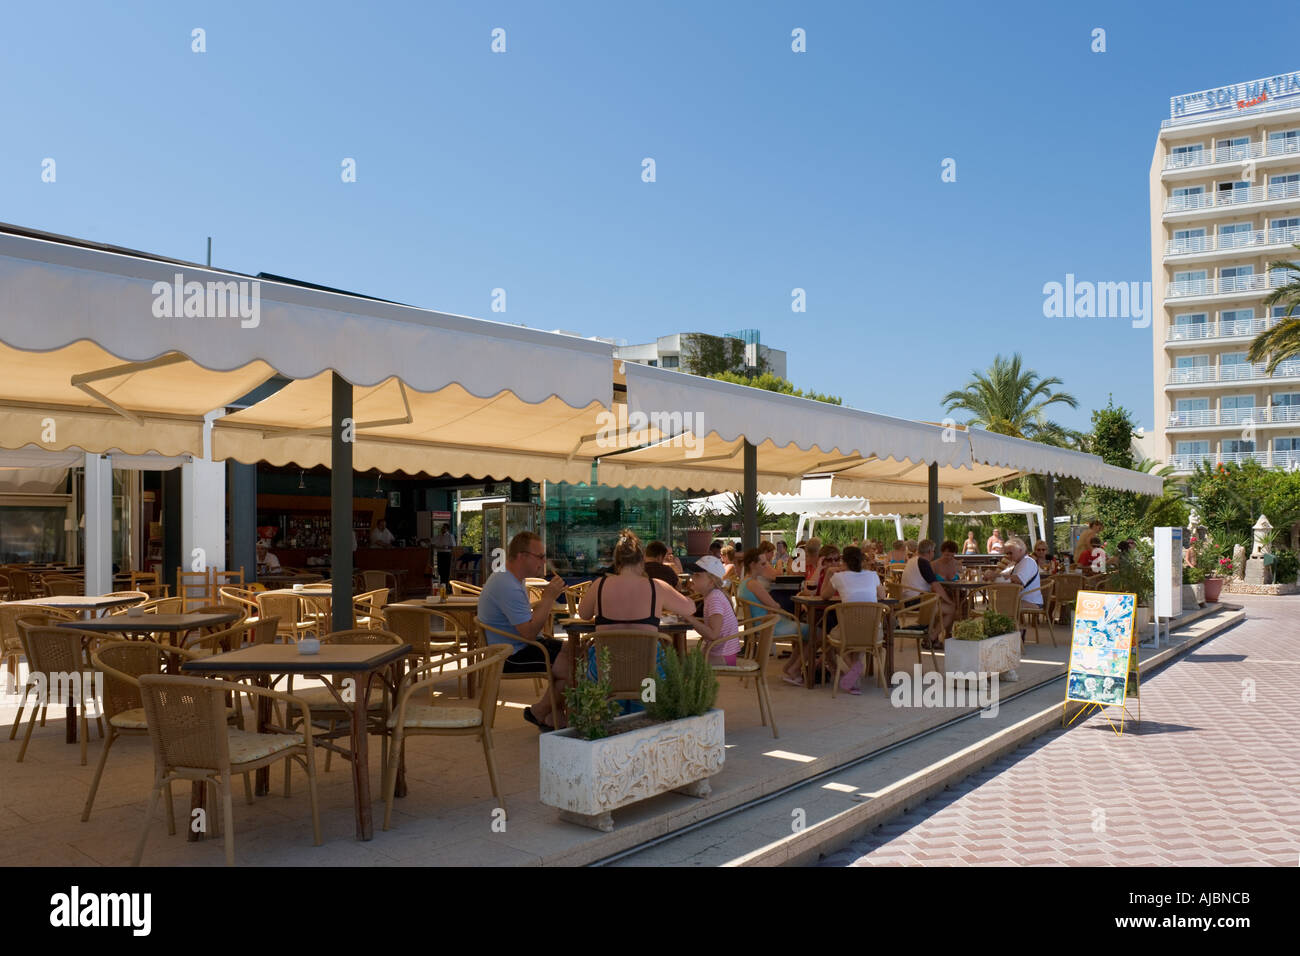 Restaurant on the promenade in Palma Nova, Bay of Palma, Mallorca, Balearic Islands, Spain - Stock Image